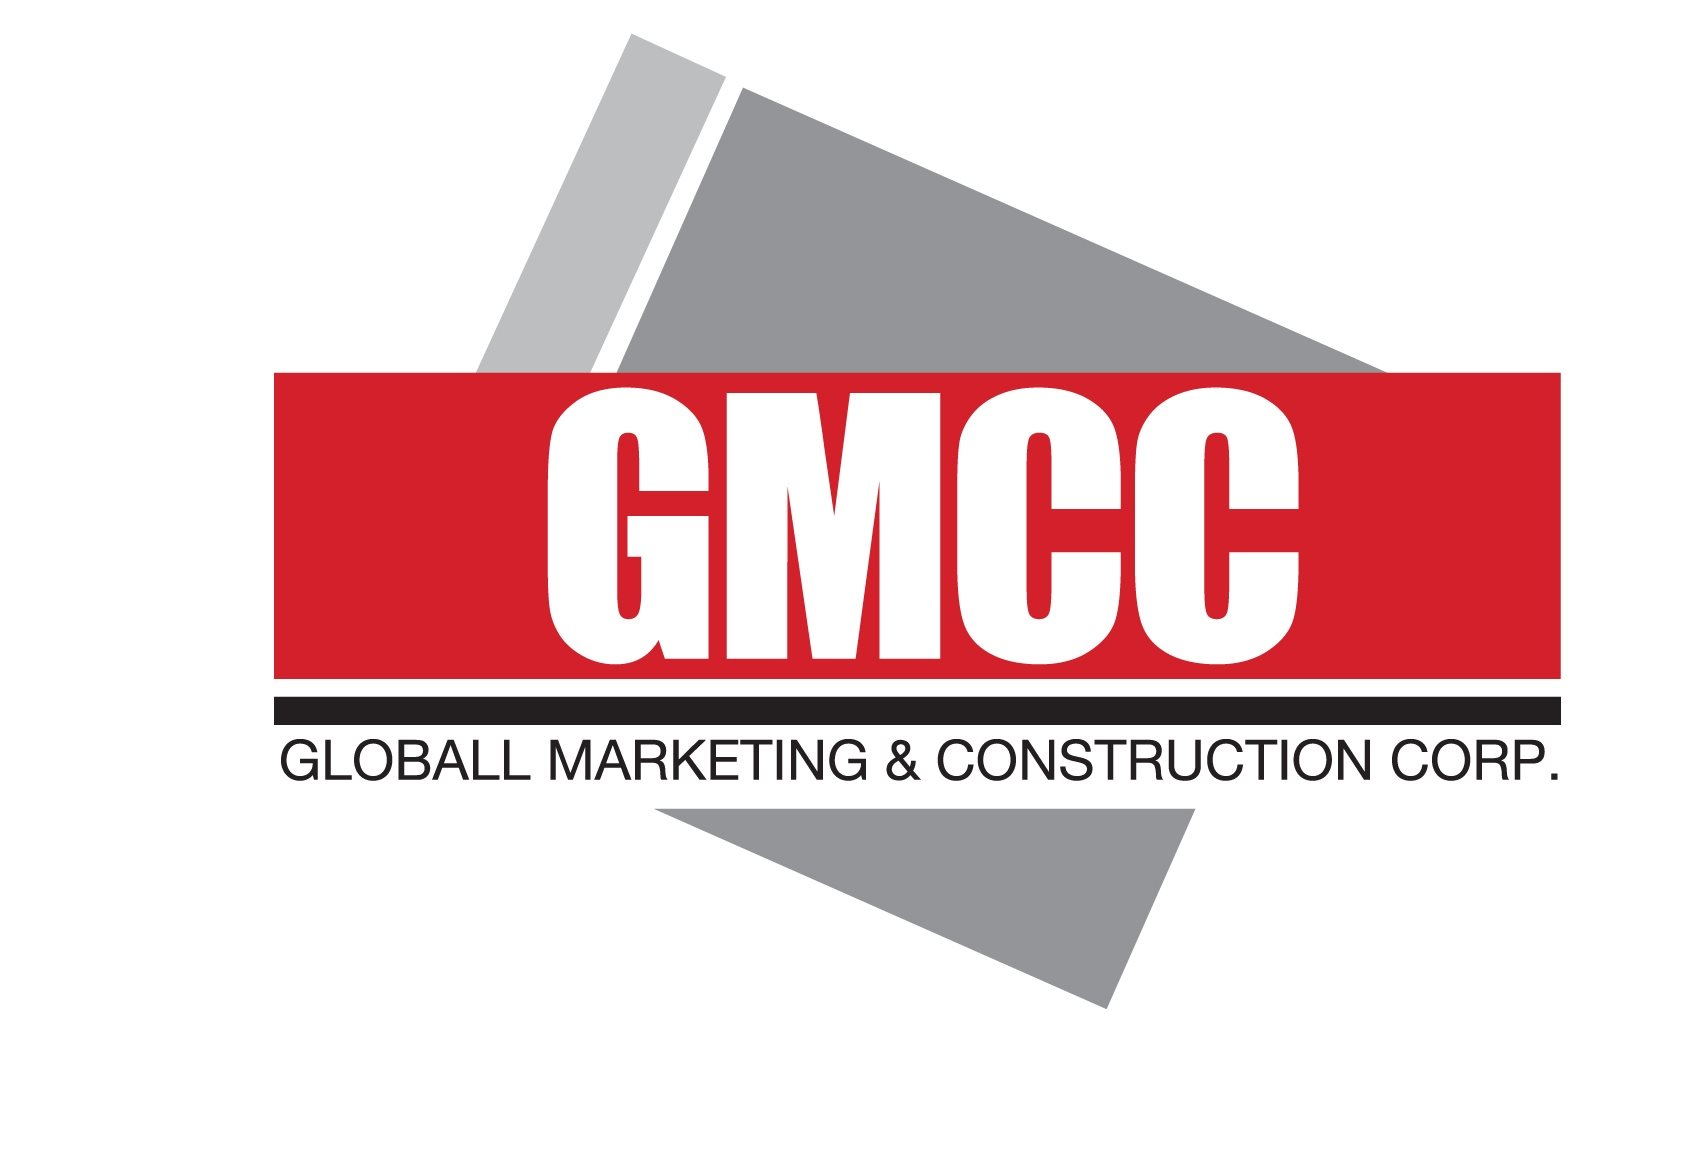 Globall Marketing & Construction Corp.